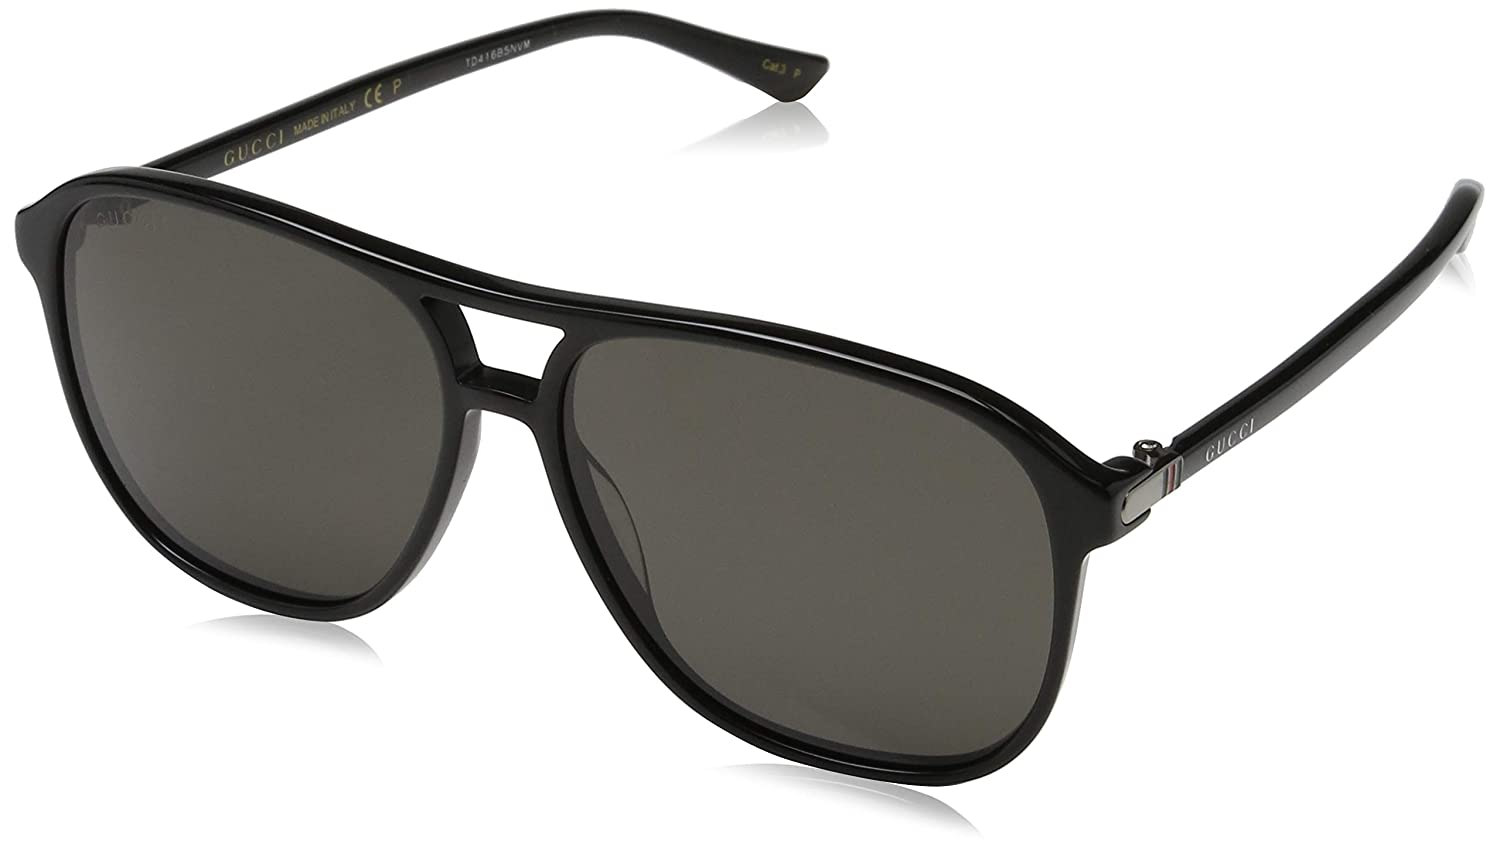 78b8bf5724 Amazon.com  Gucci GG0016S 006 Black 0016S Round Sunglasses Polarised Lens  Category 3 Size 5  Gucci  Clothing